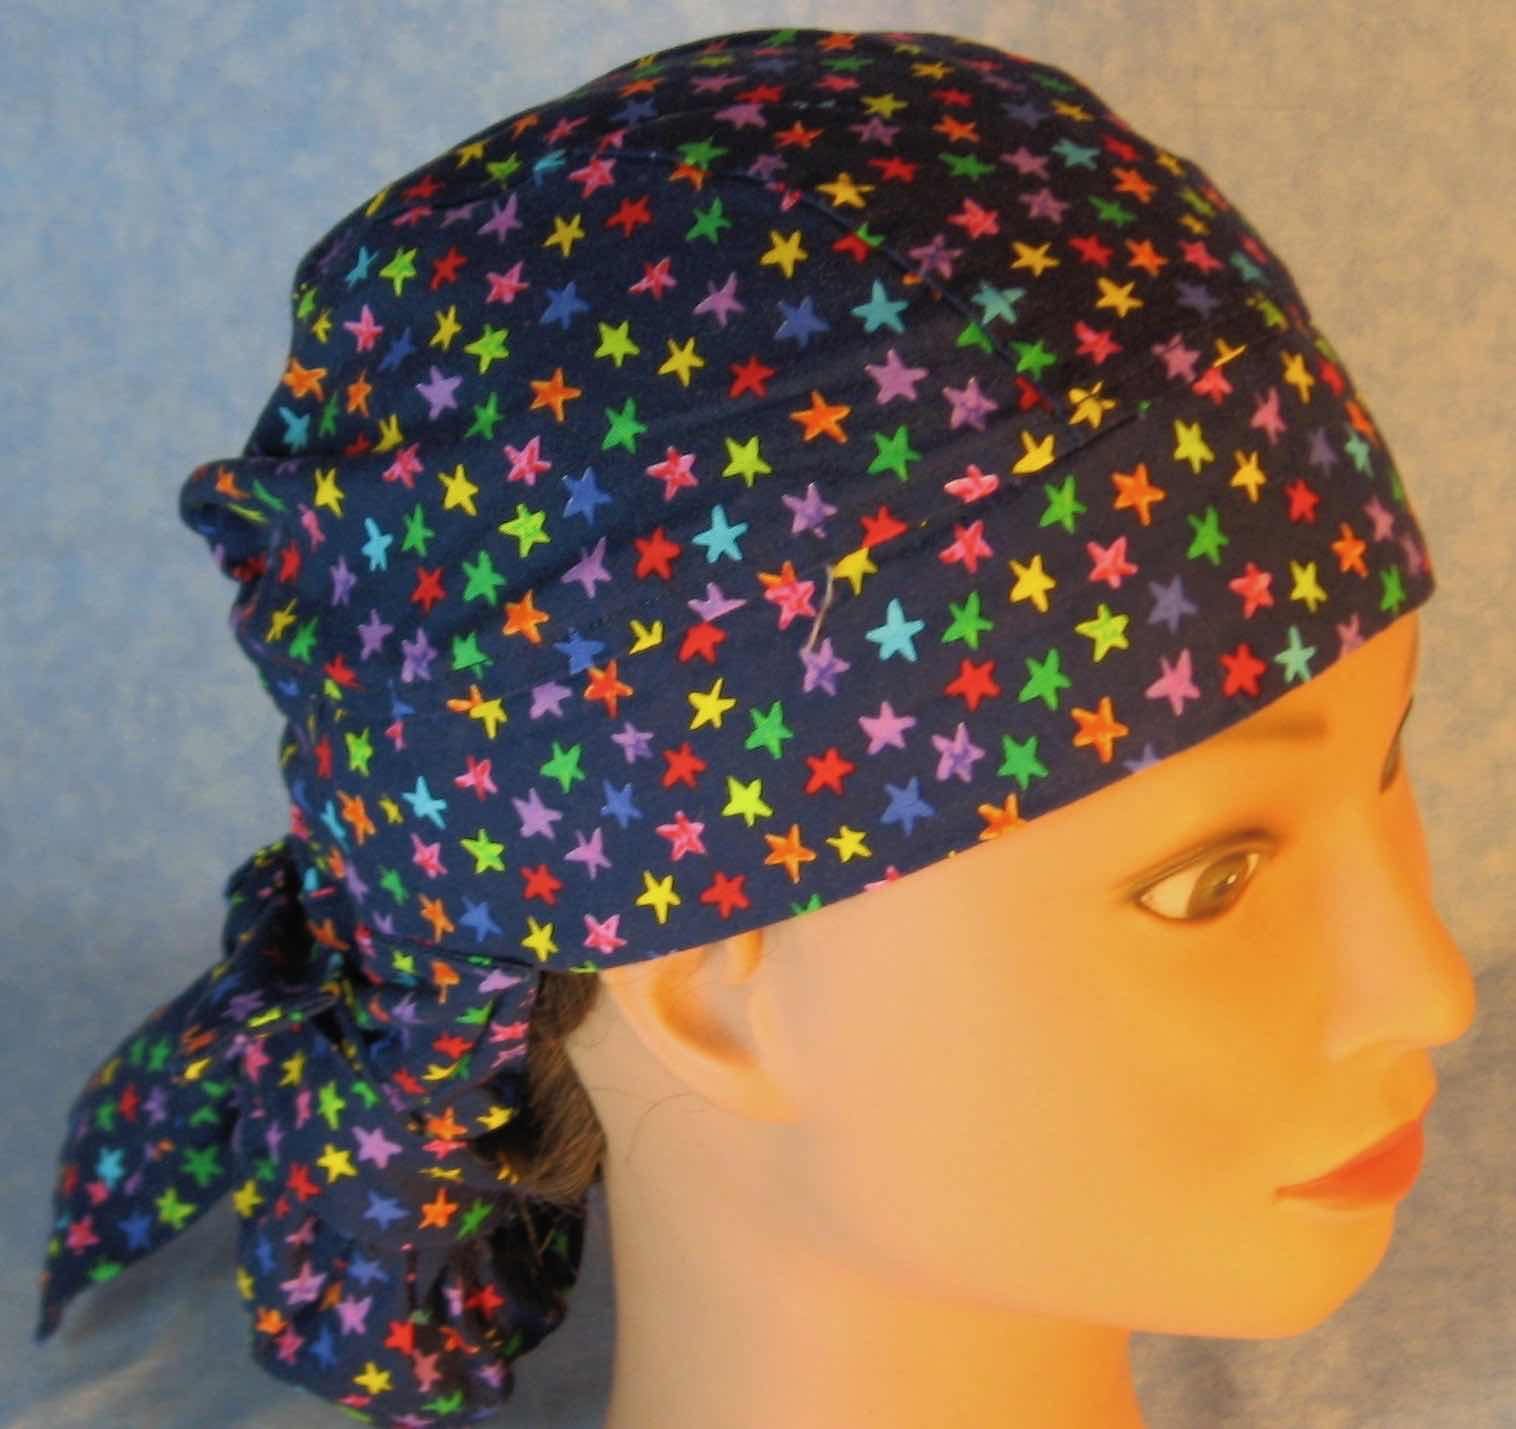 Hair Bag Do Rag in Rainbow Stars on Navy - Adult M-XL